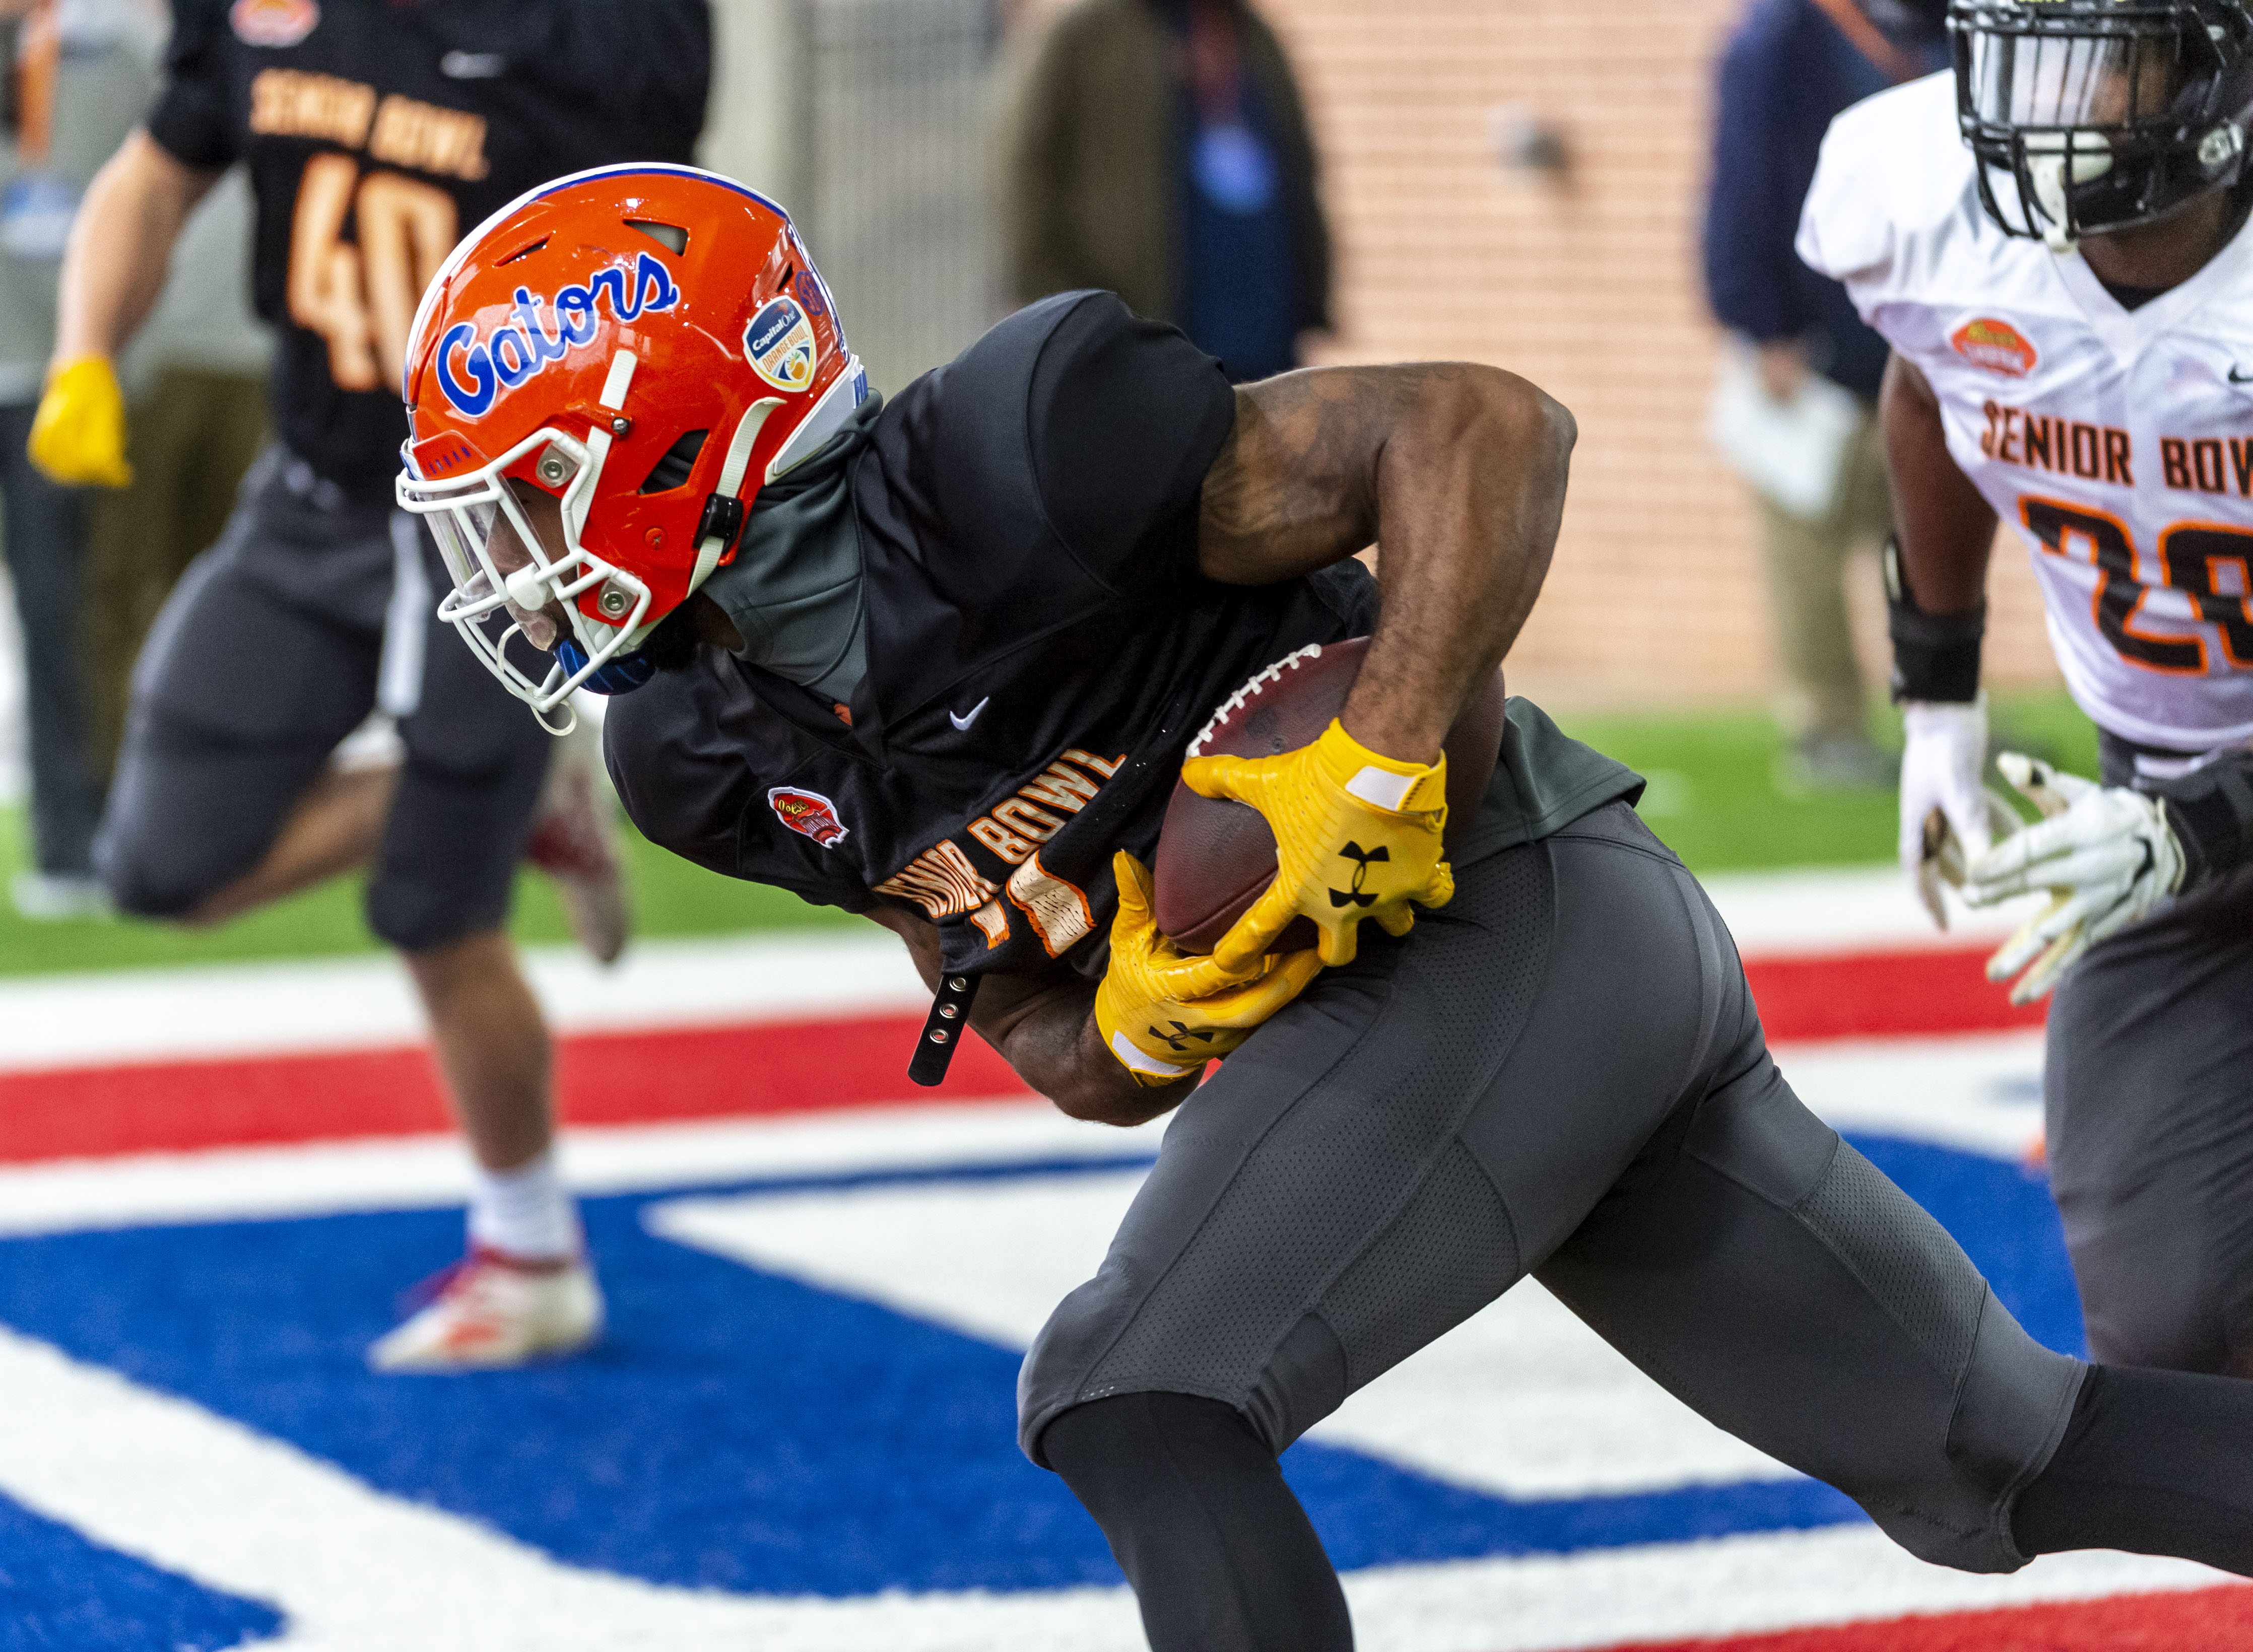 Jefferson, Perine Named Senior Bowl Practice Players of the Week